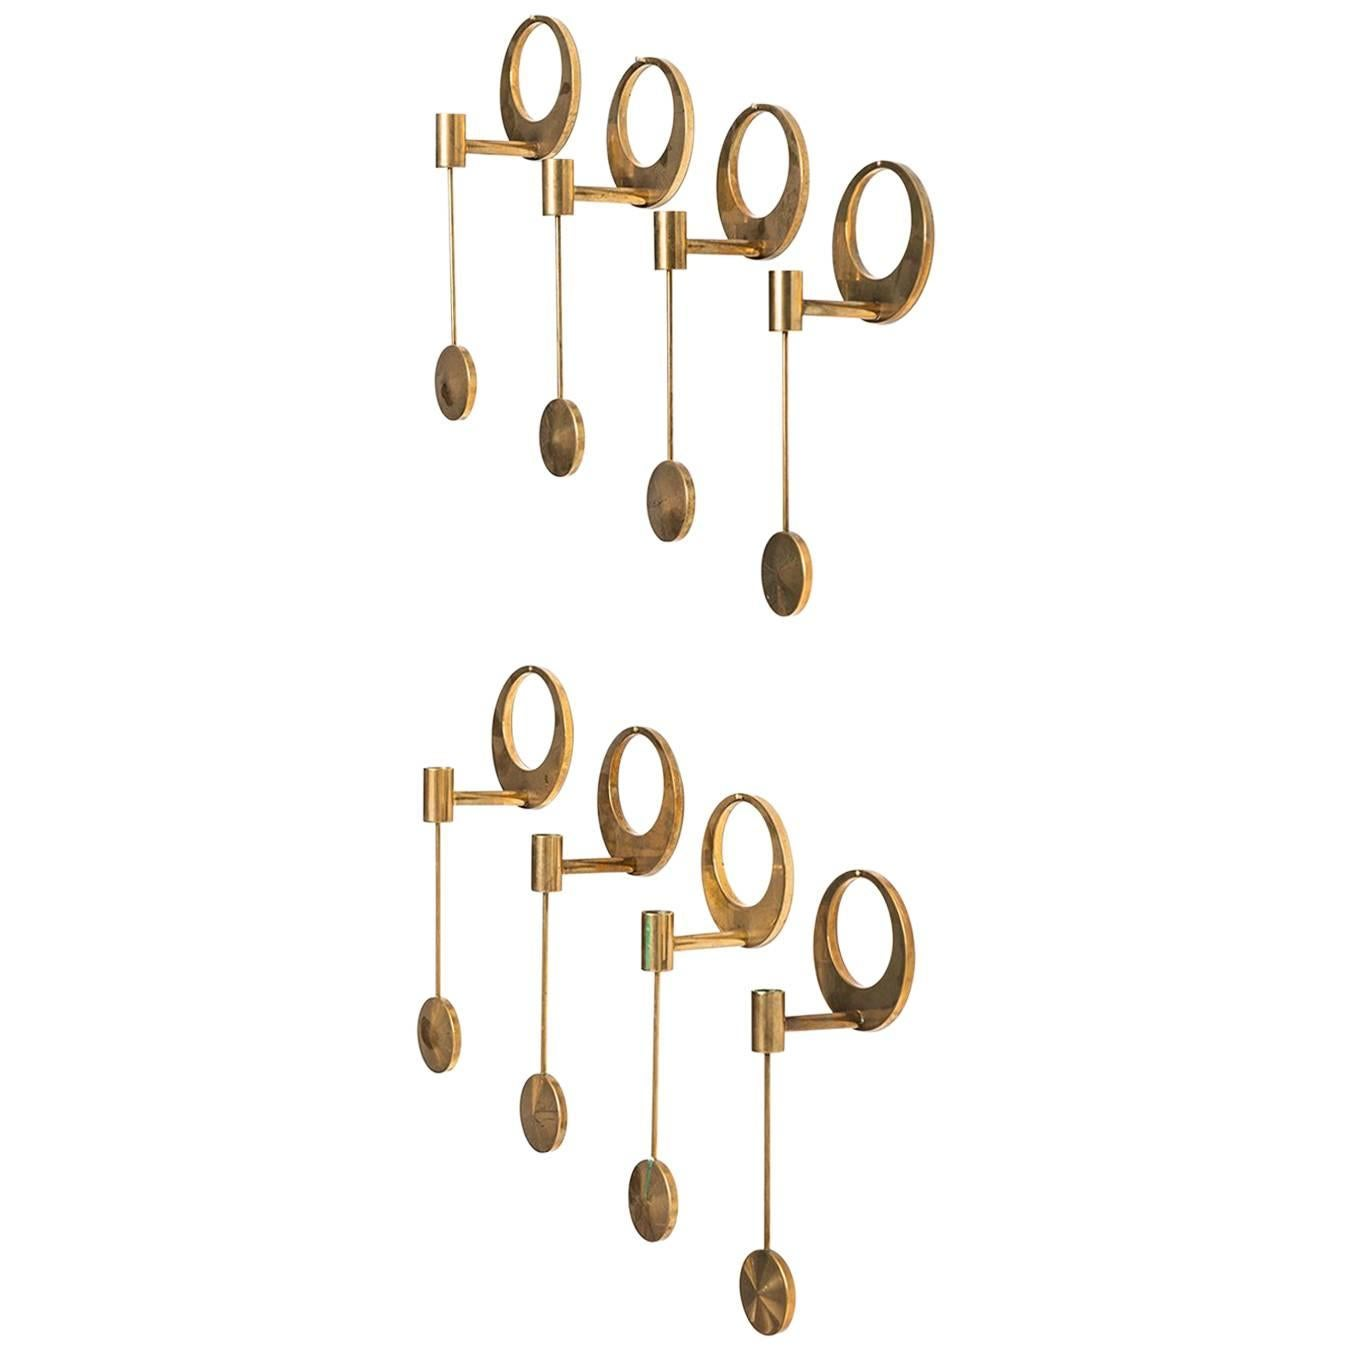 Arthur Pe Wall Hanged Candlesticks by Kolbäck in Sweden